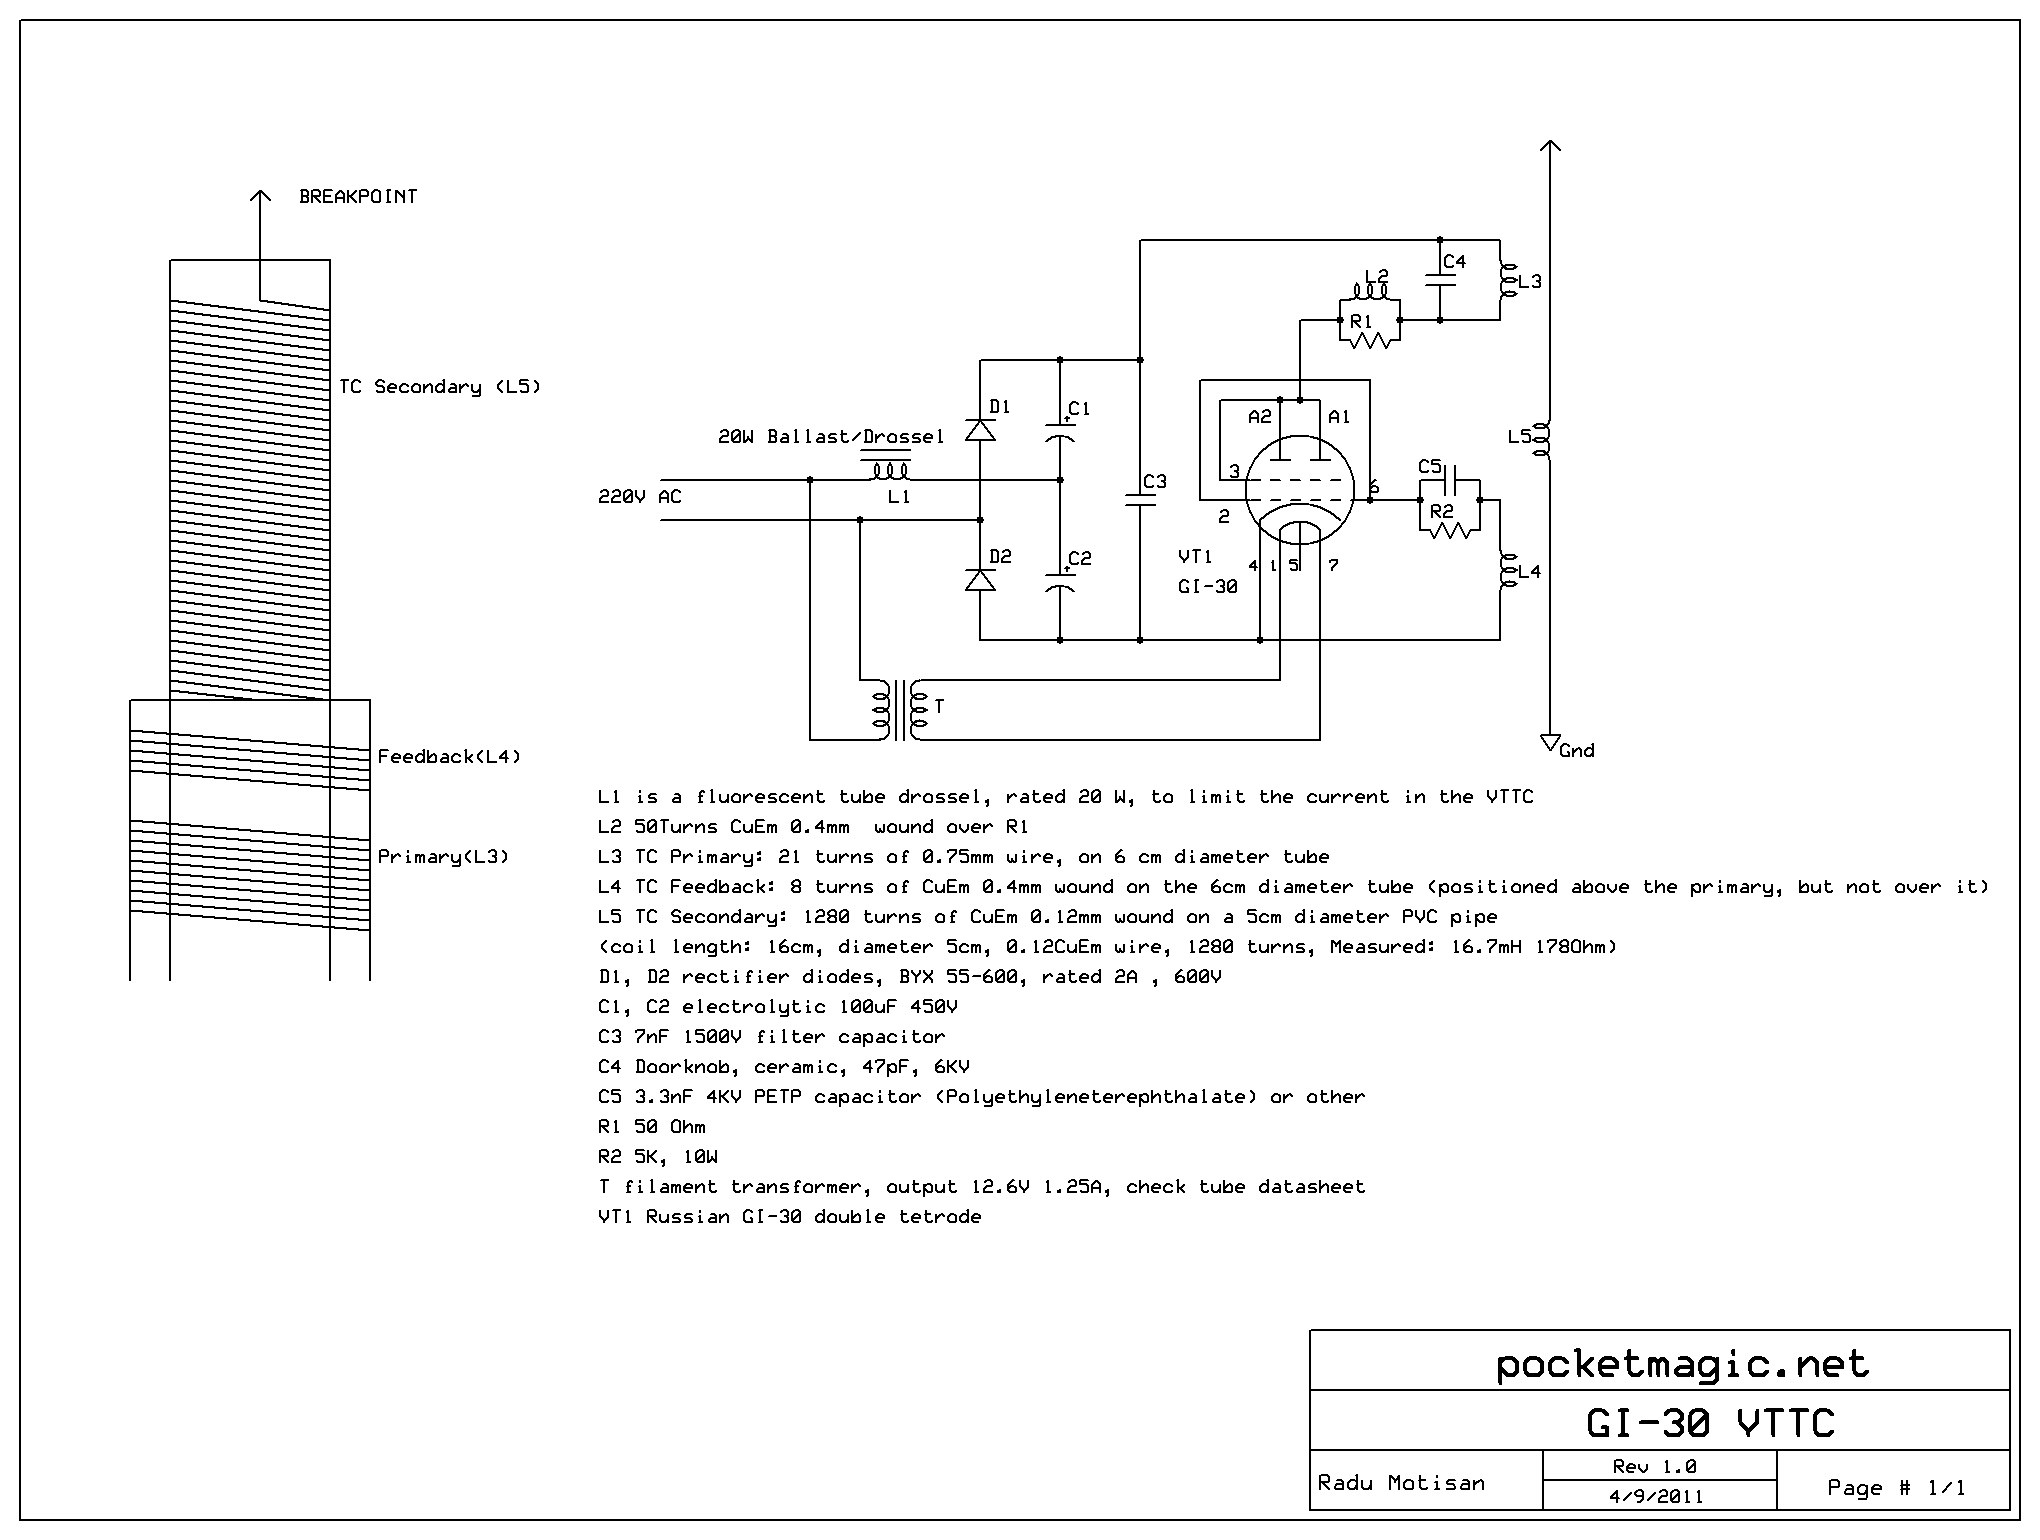 Tesla Lamp Schematic Download Wiring Diagrams Diagram Coil Circuit Page 3 Power Supply Circuits Next Gr